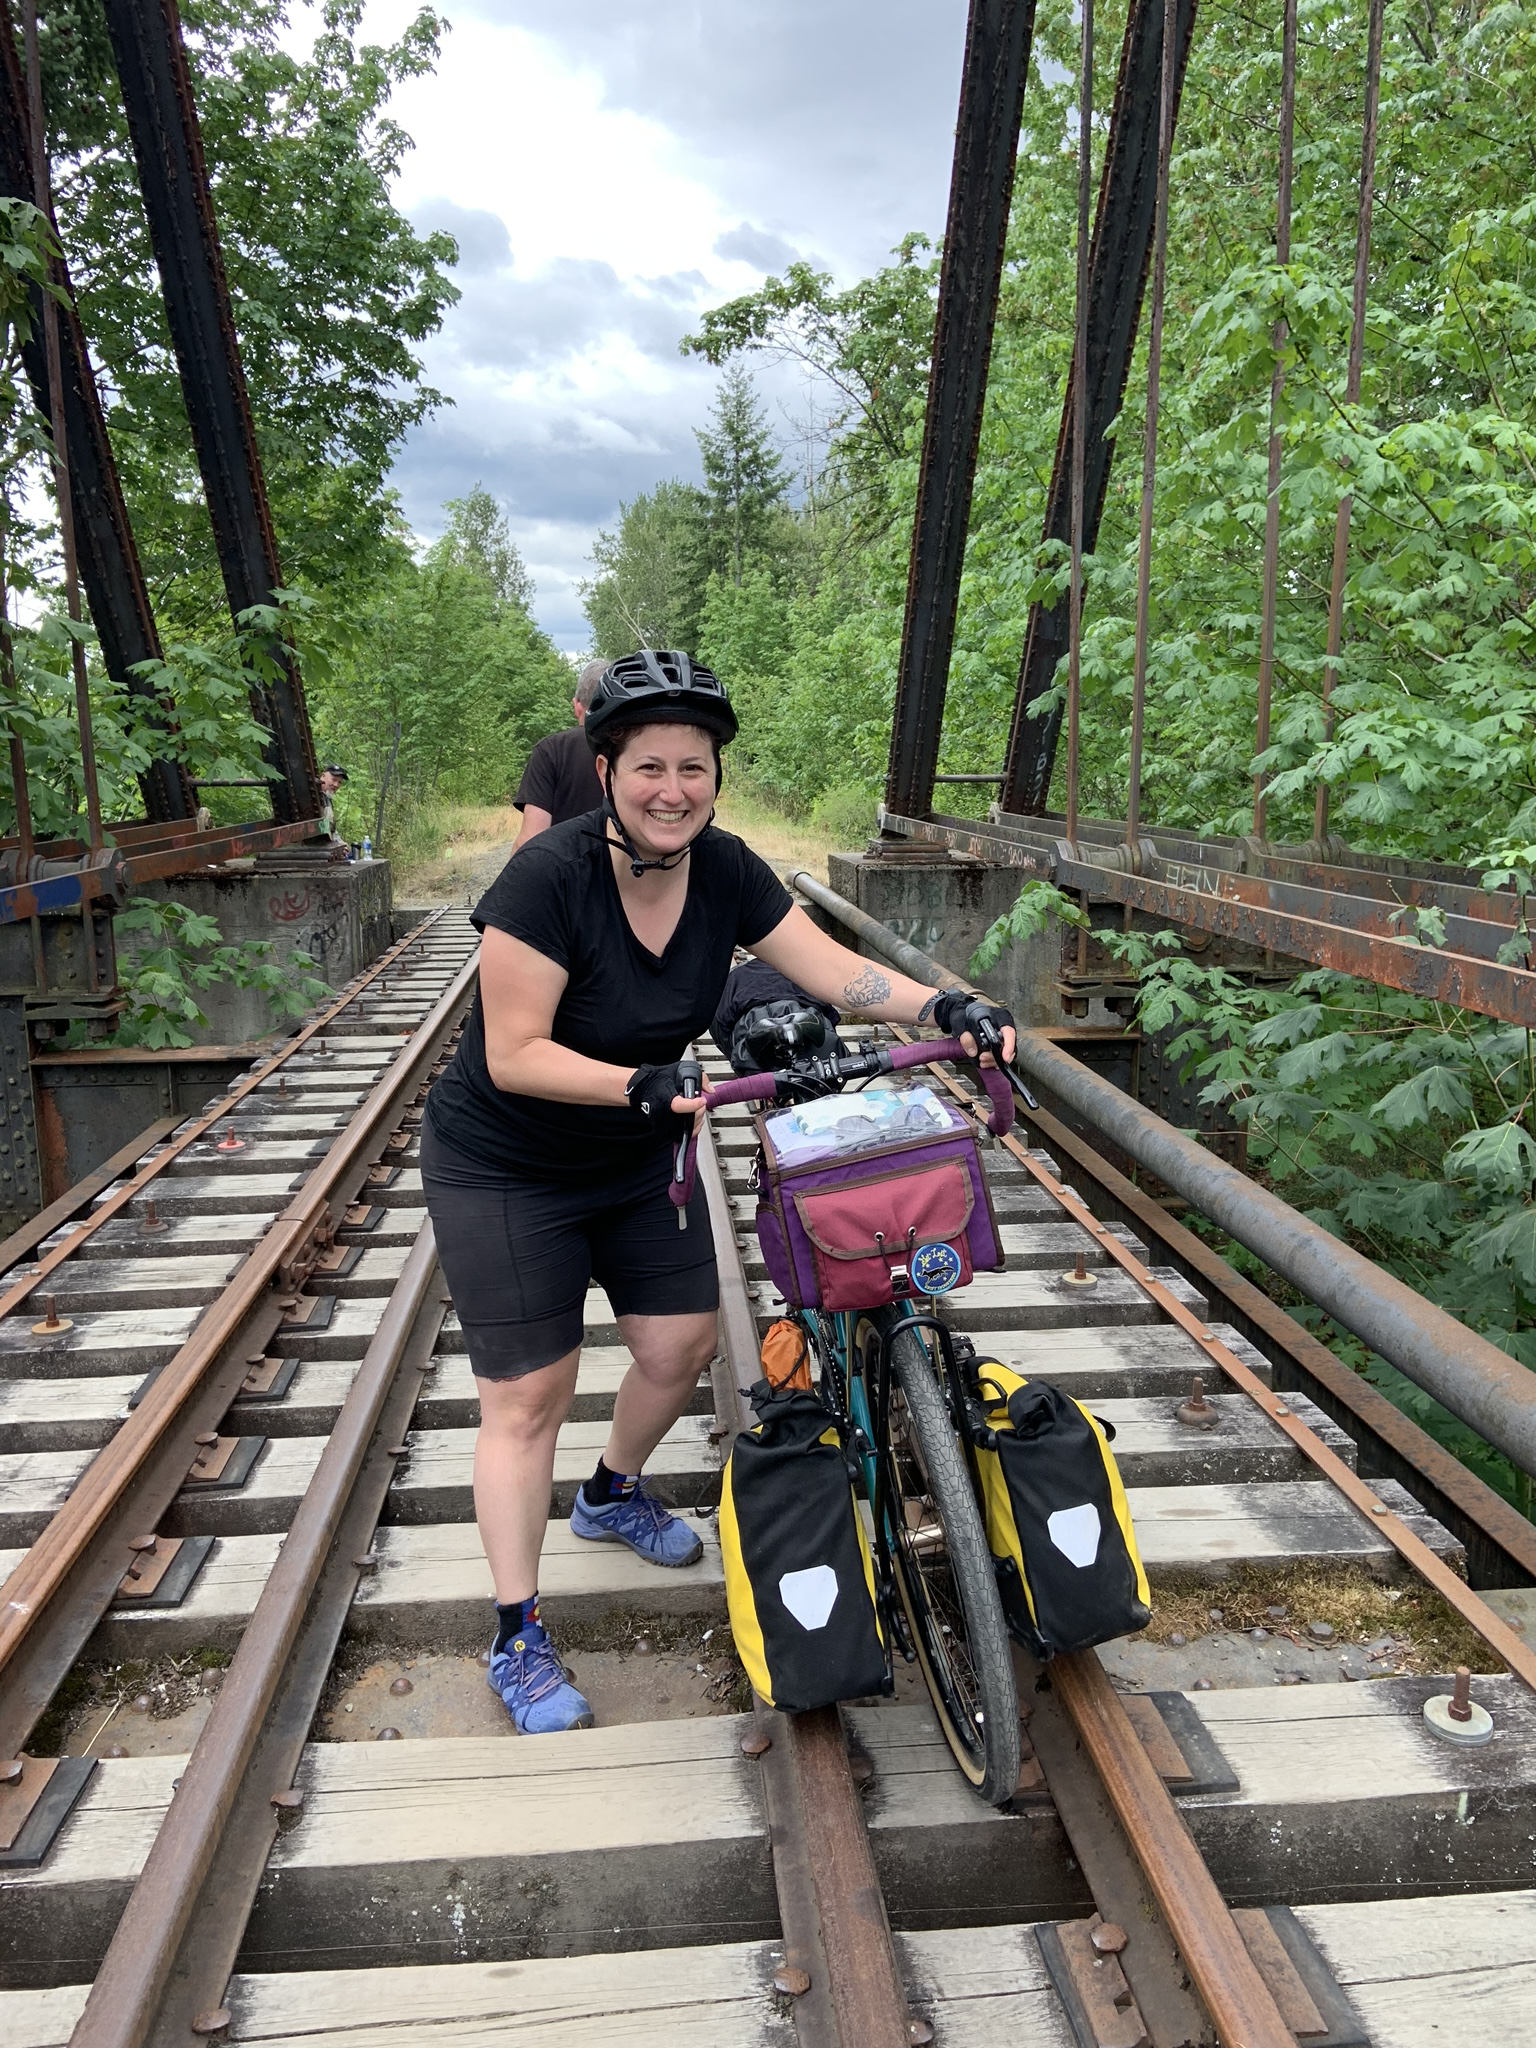 Gabby makes the best of the railroad trestle situation